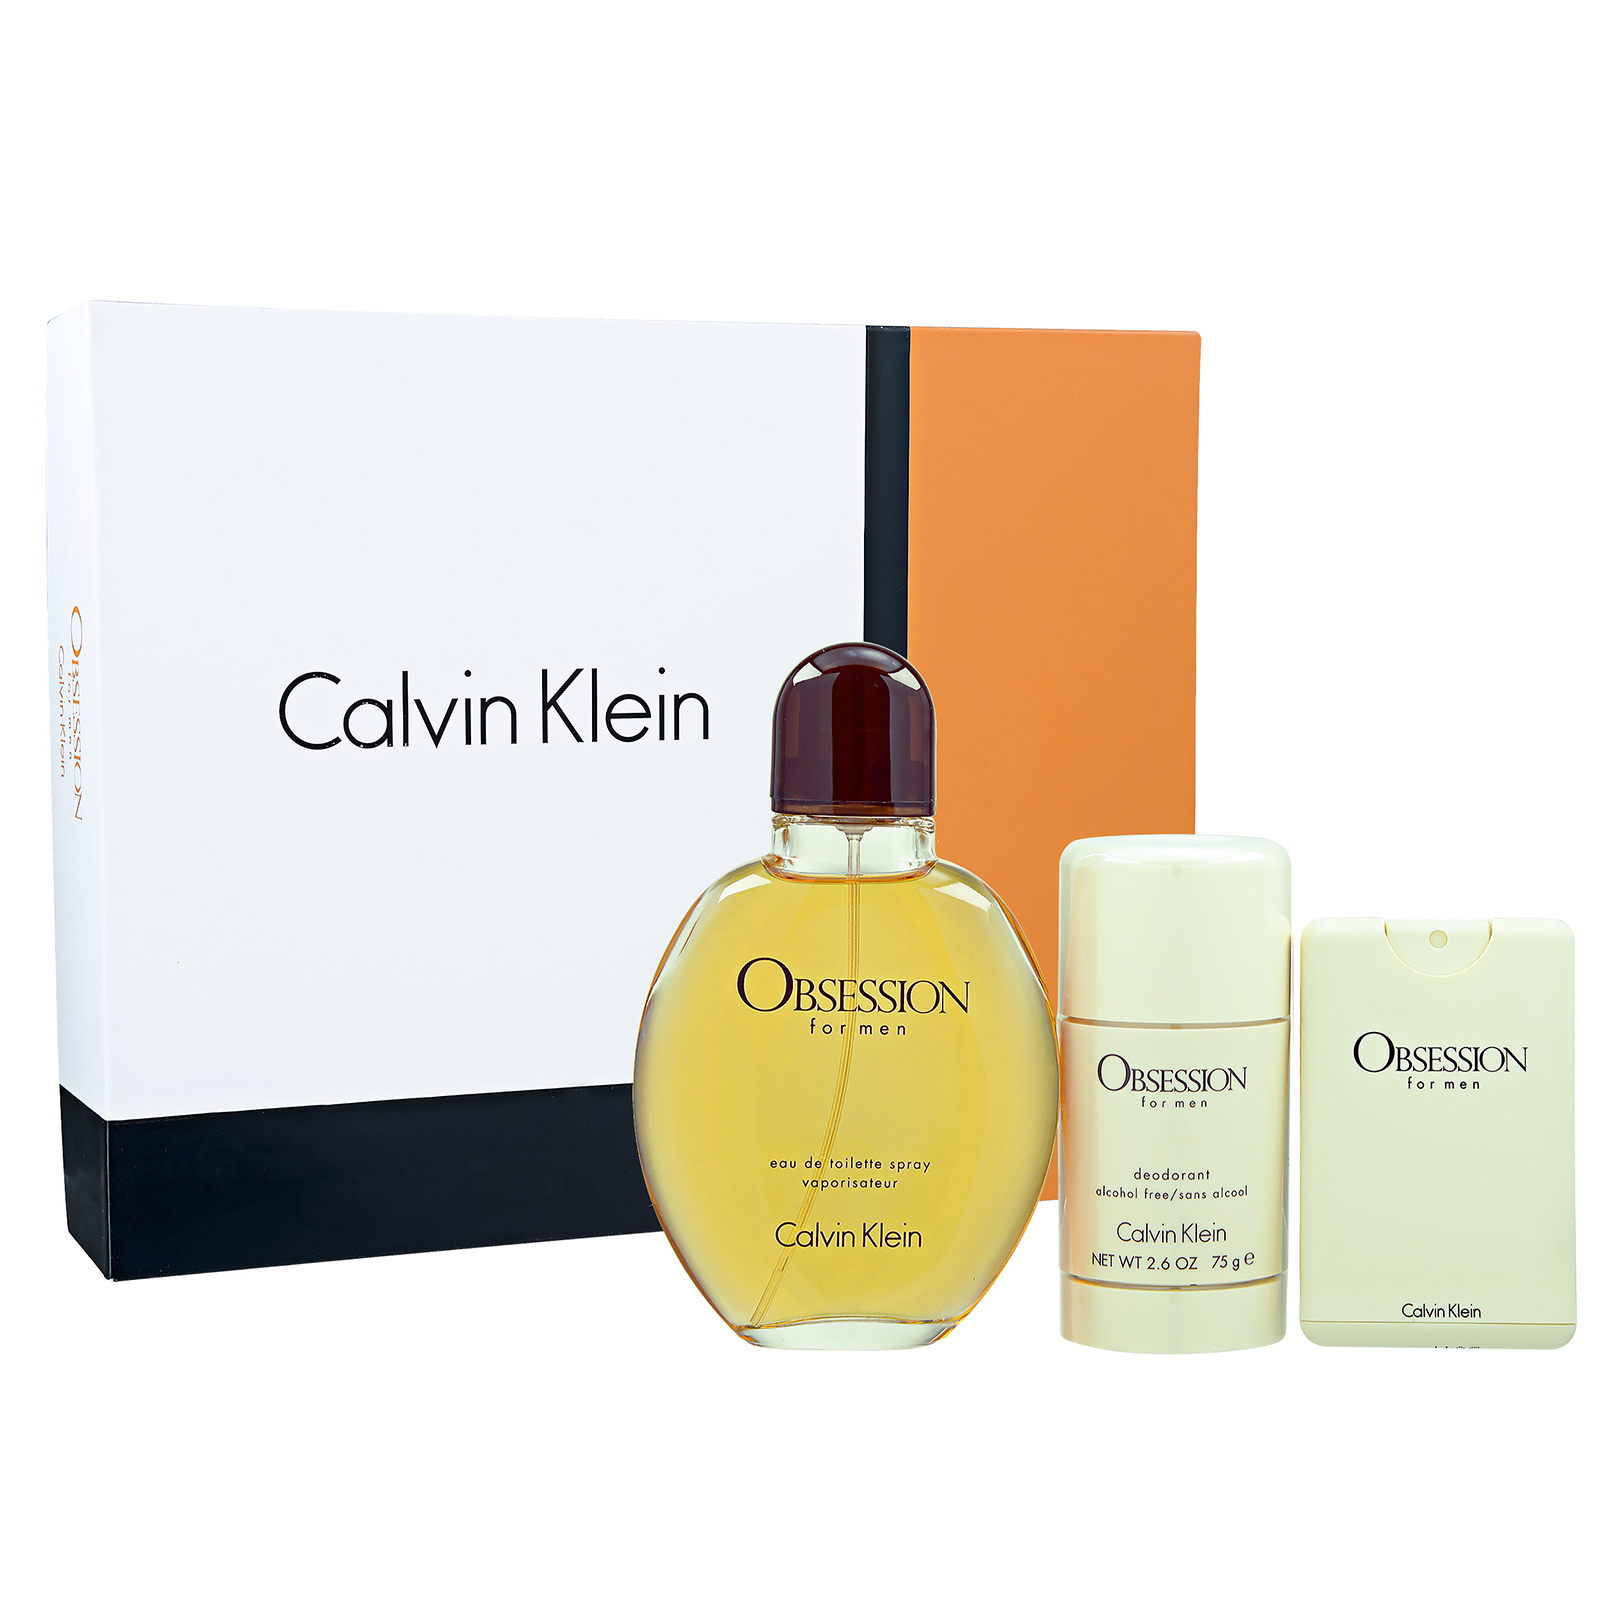 Calvin Klein Obsession For Men EDT 3-Piece Set 1set, 3pcs 125ml 4oz Spray Deodorant